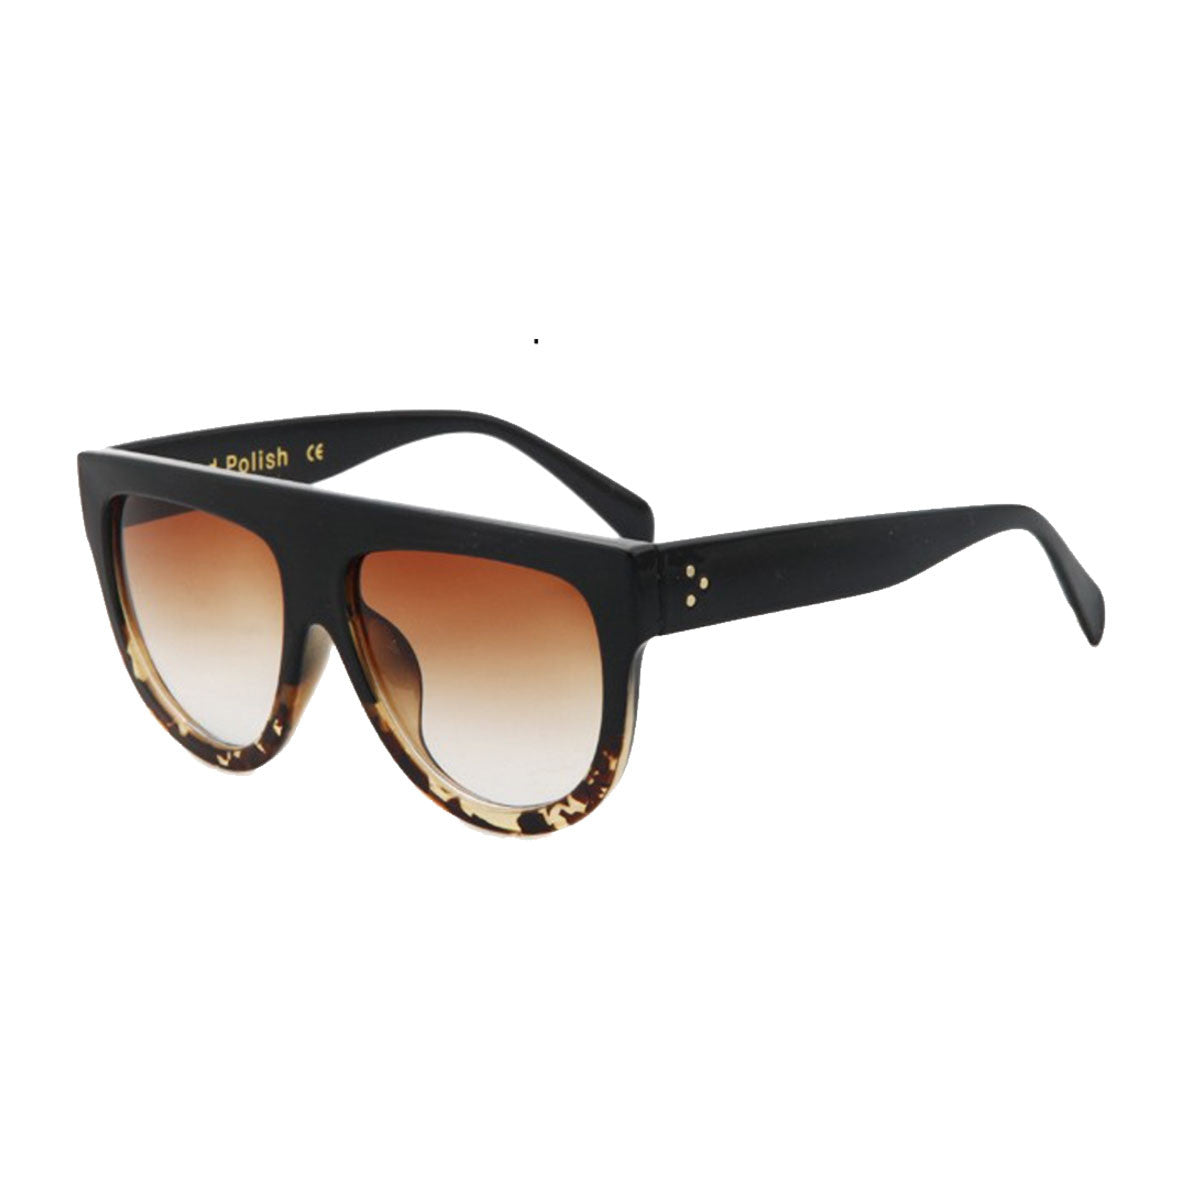 Shop Glow Glam XO CYRA luxe fashion sunglasses online